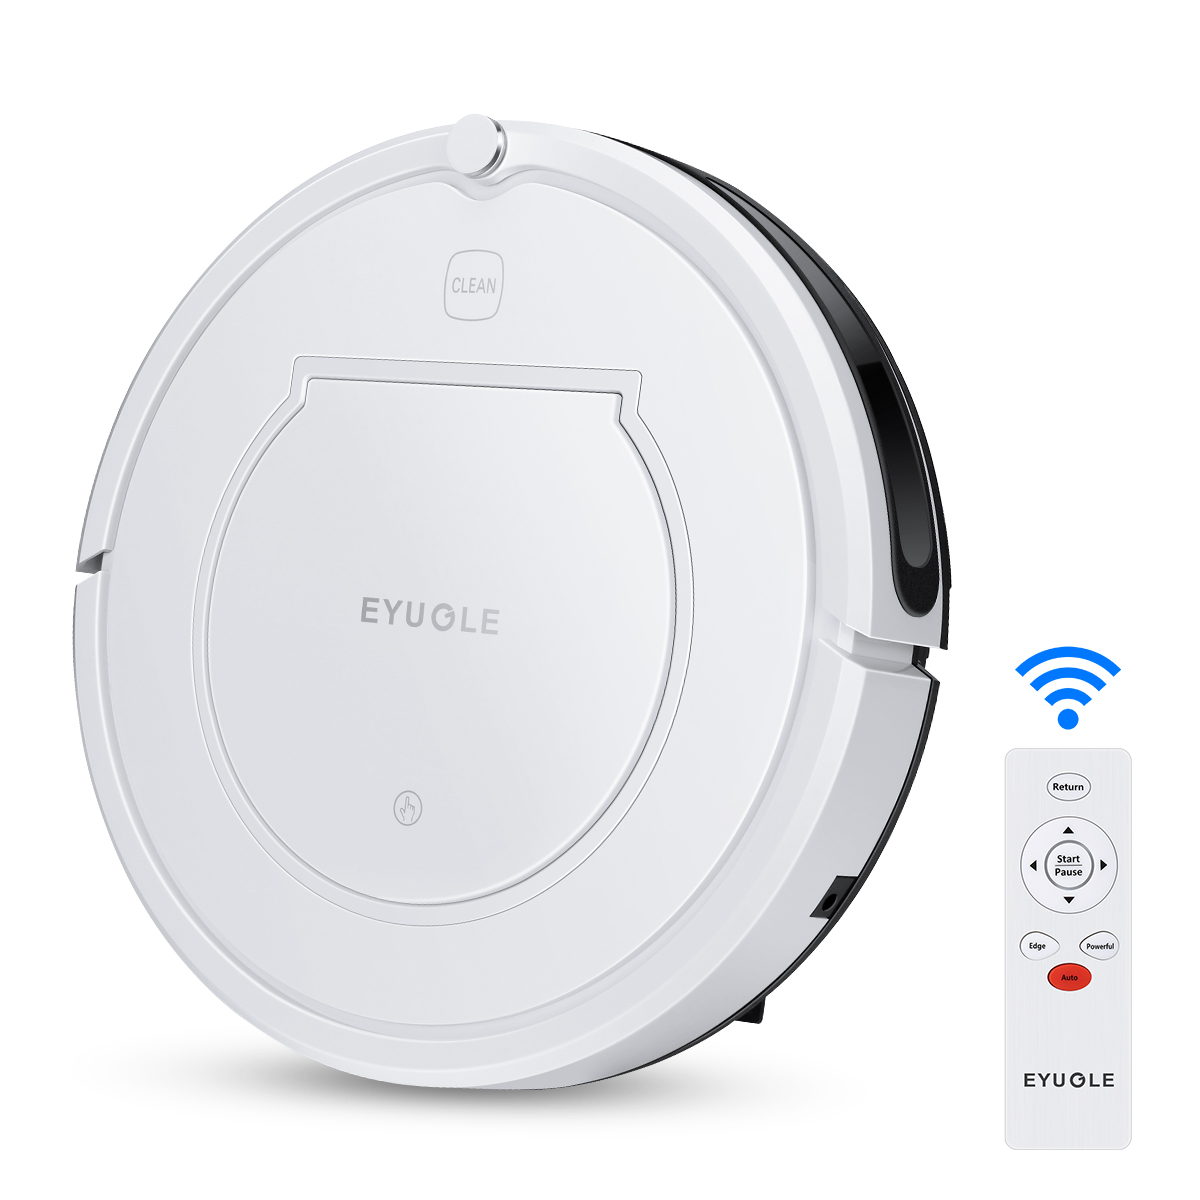 Eyugle KK320A1N Robotic Vacuum Cleaner 900Pa Powerful Suction Quiet Self-Charging With Connected Gyroscope Navigation HEPA Filter For Hair Hard Floors